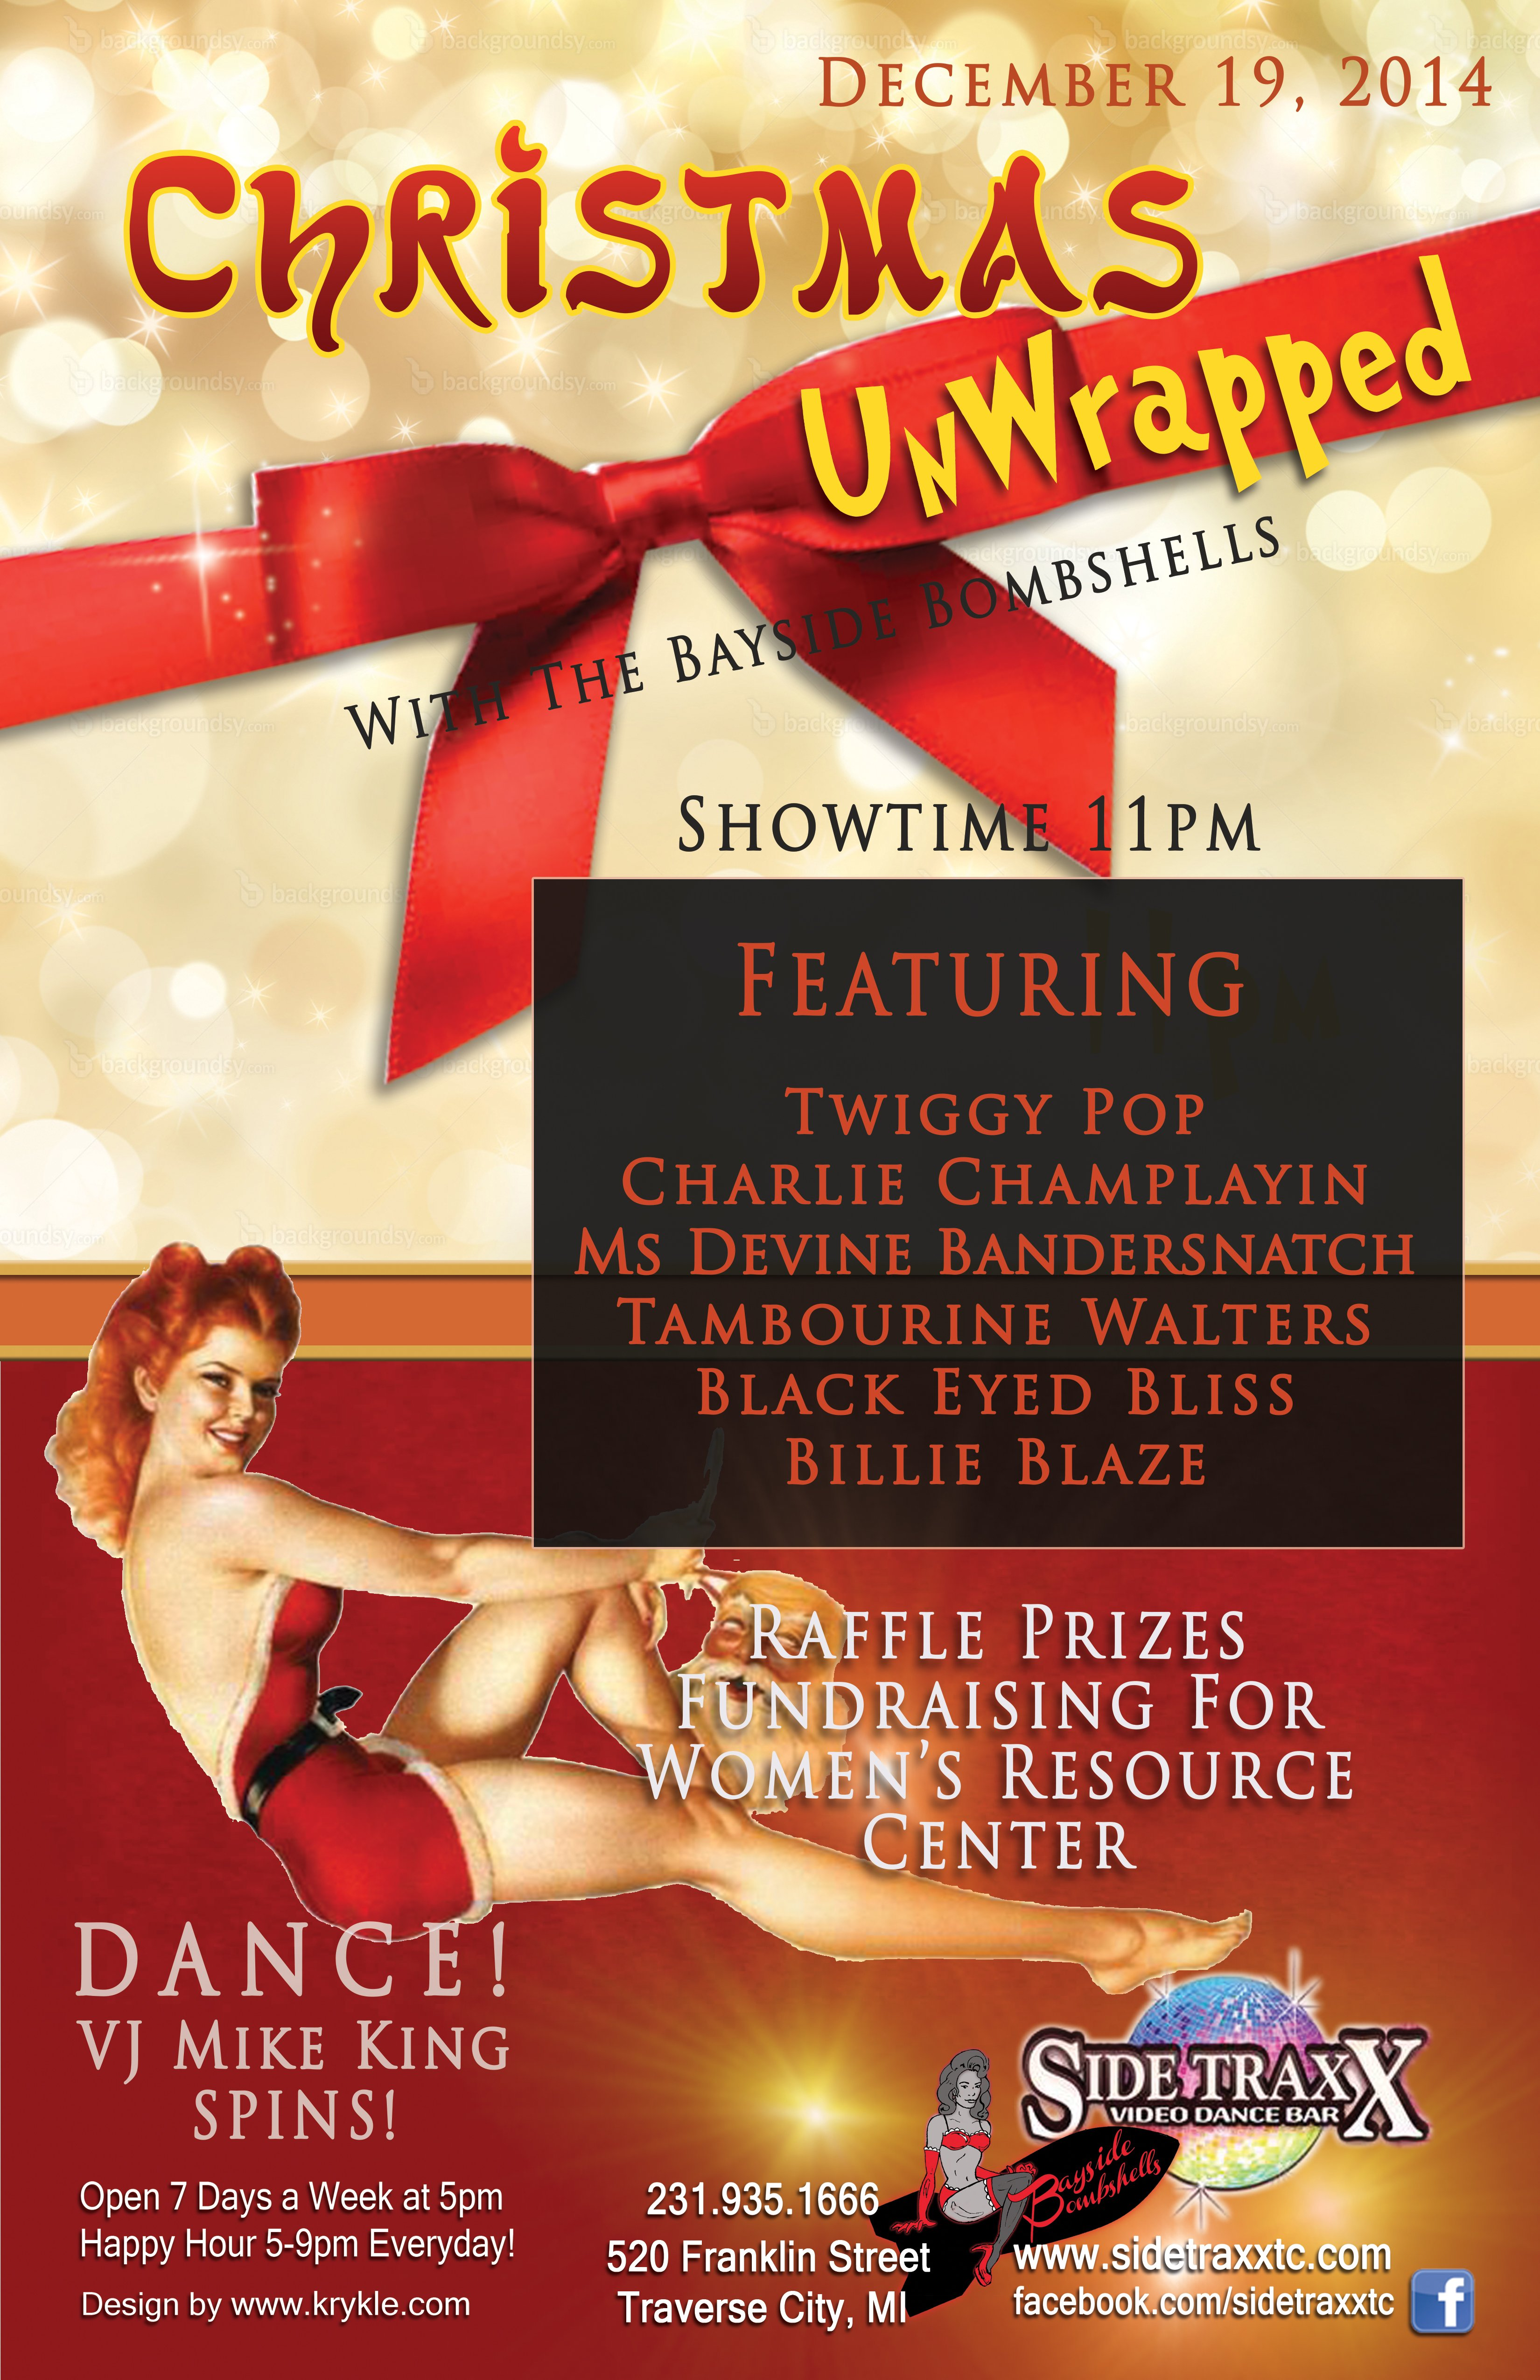 WEB Friday - Dec 19 2014 - Christmas with the Bombshells - Design by Krykle LLC